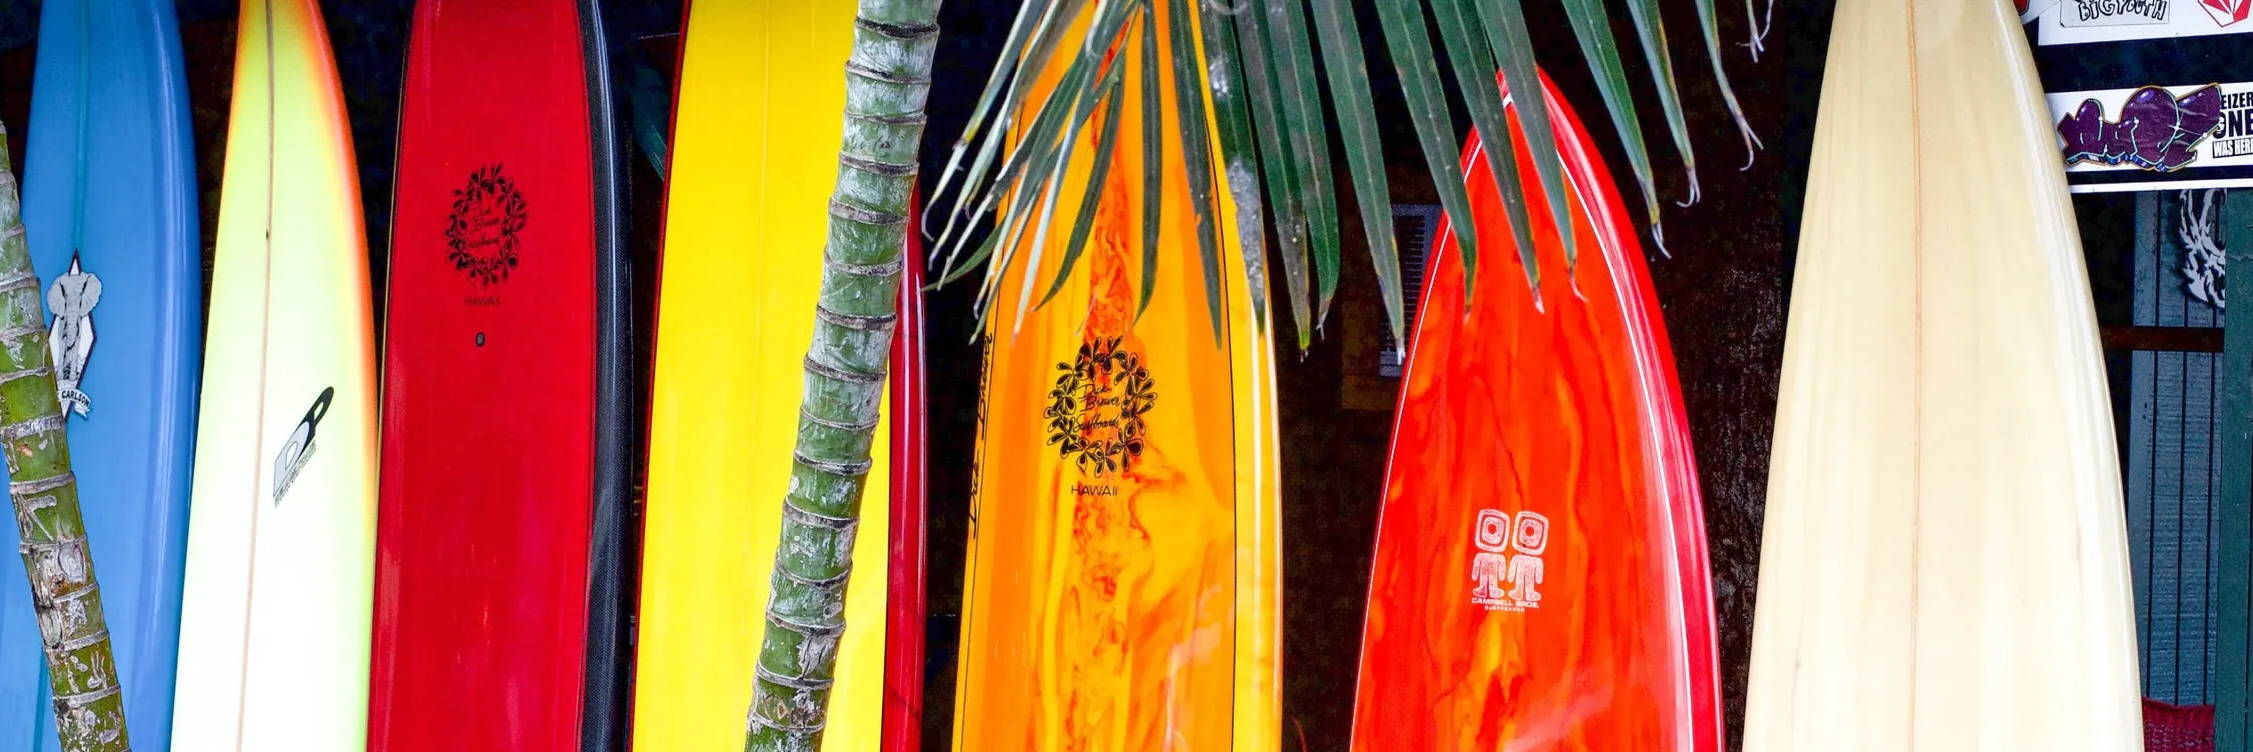 A variety of colorful surfboards on a rack